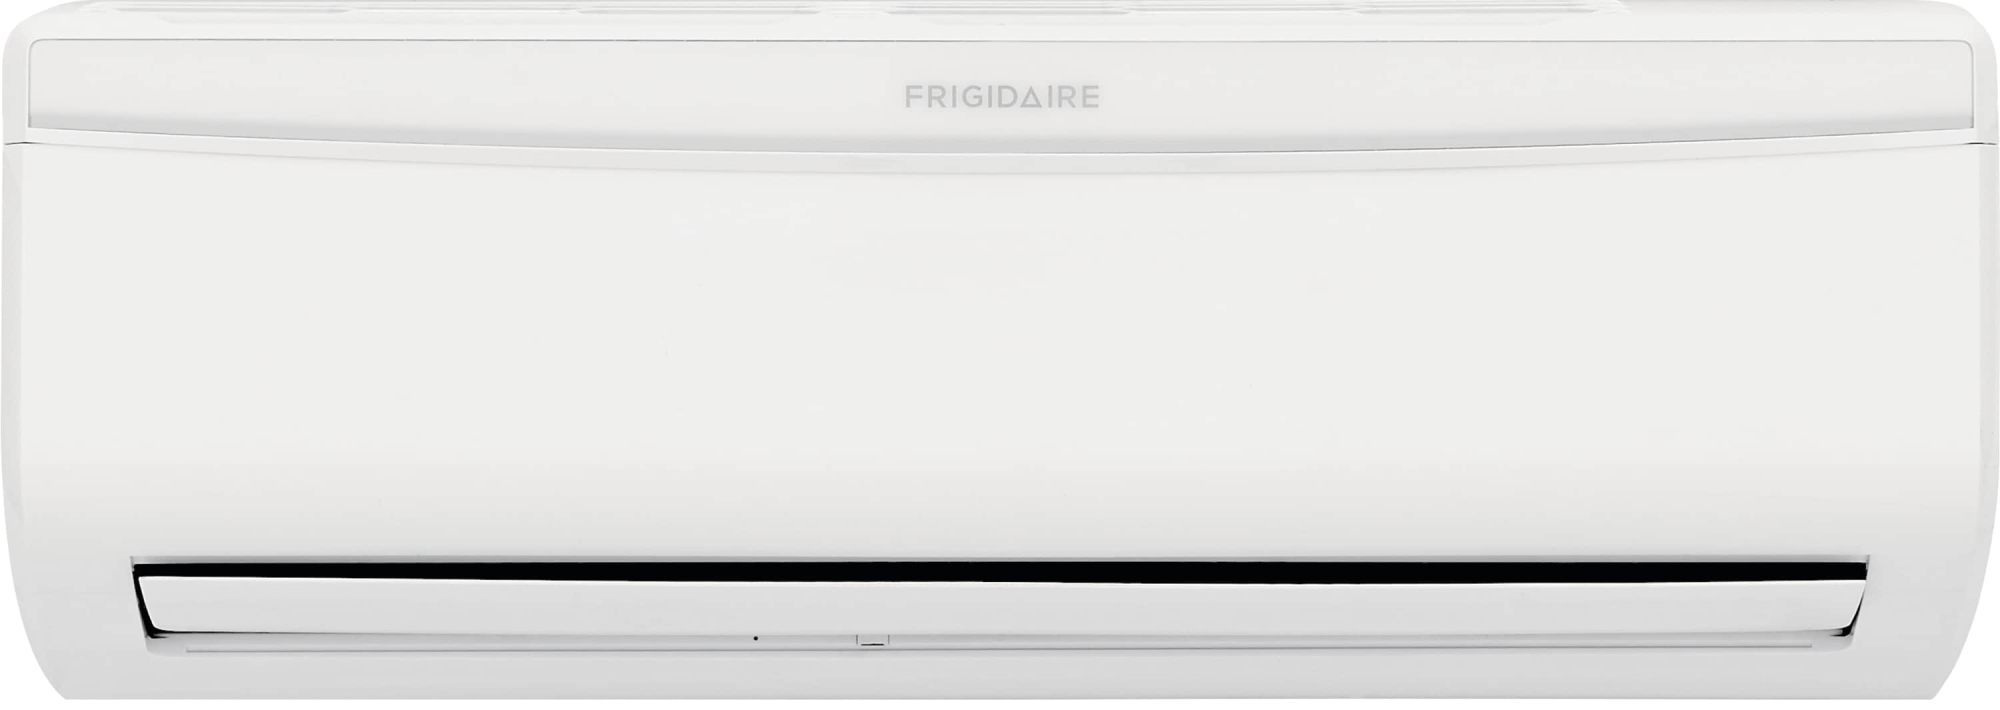 hight resolution of model ffhp124ws1 ductless split air conditioner cool and heat 12 000 btu heat